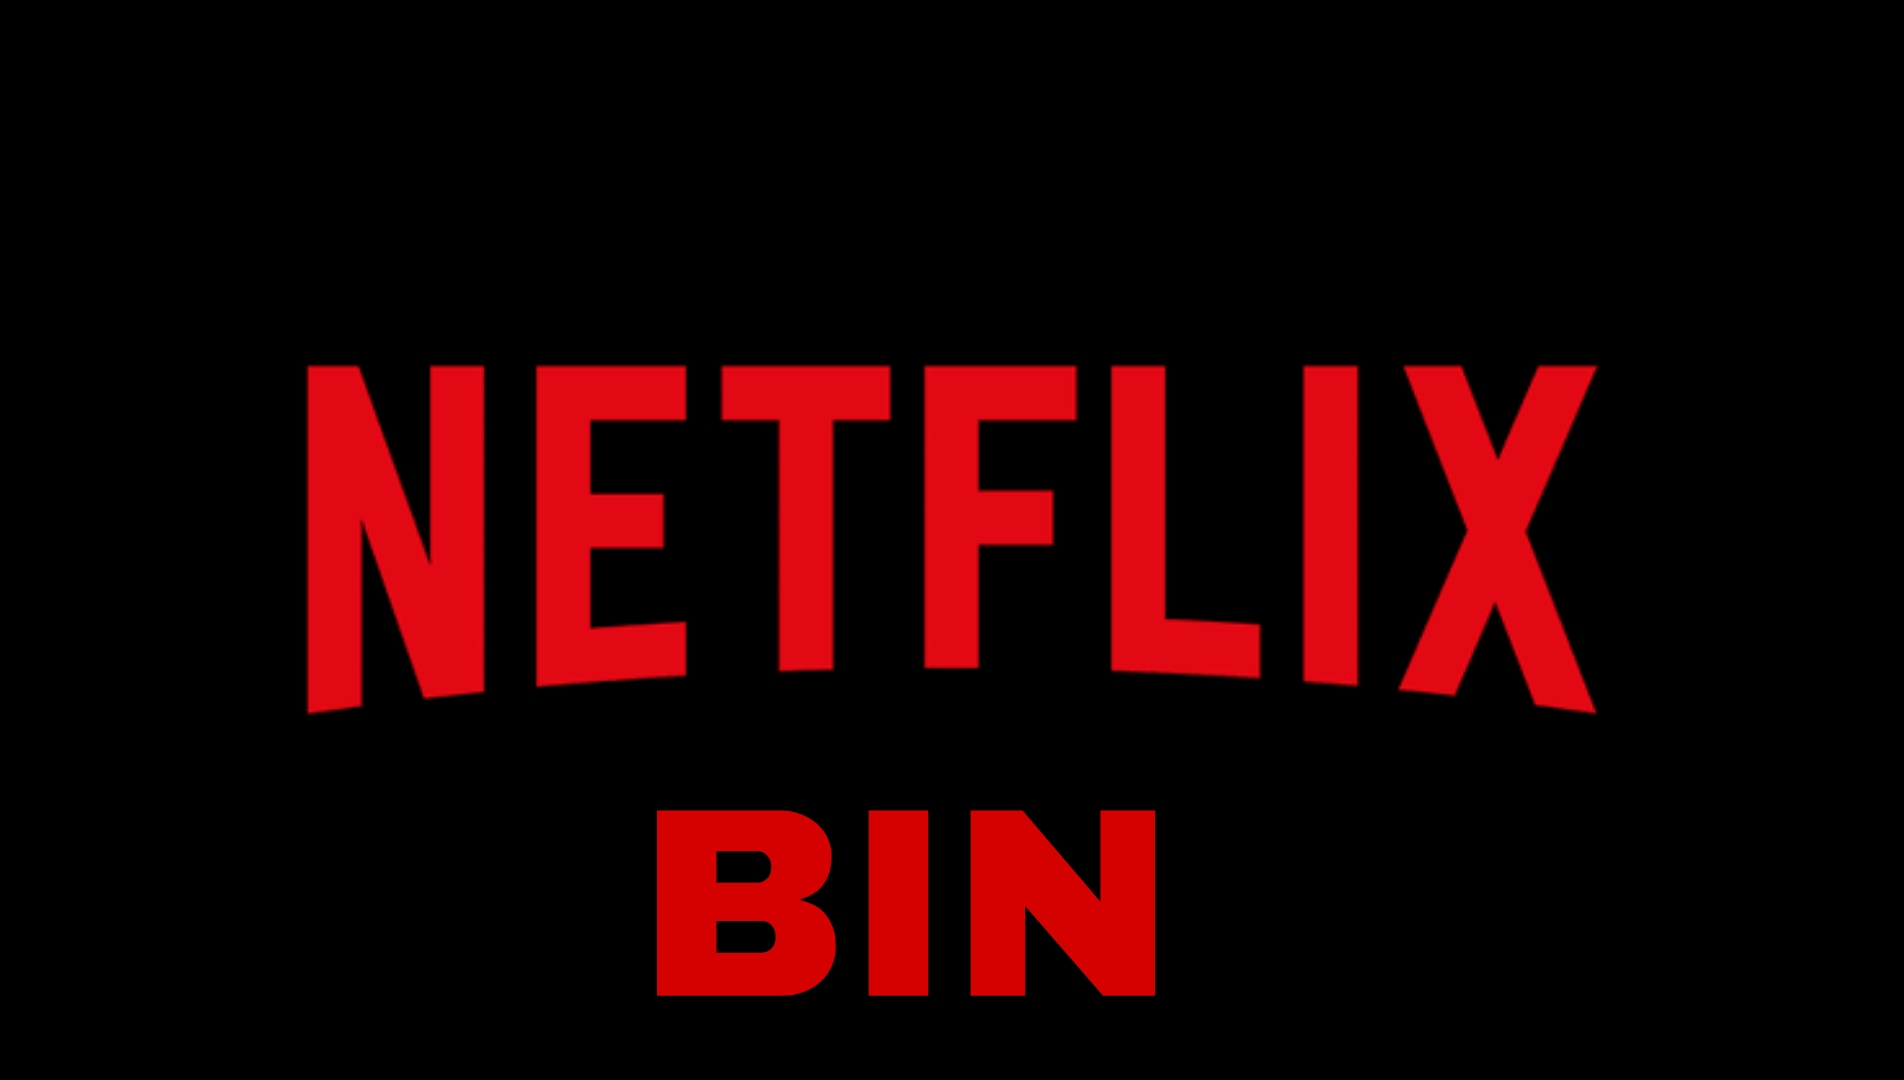 Netflix: a highlight on the latest working Bin for the creation of Netflix premium account